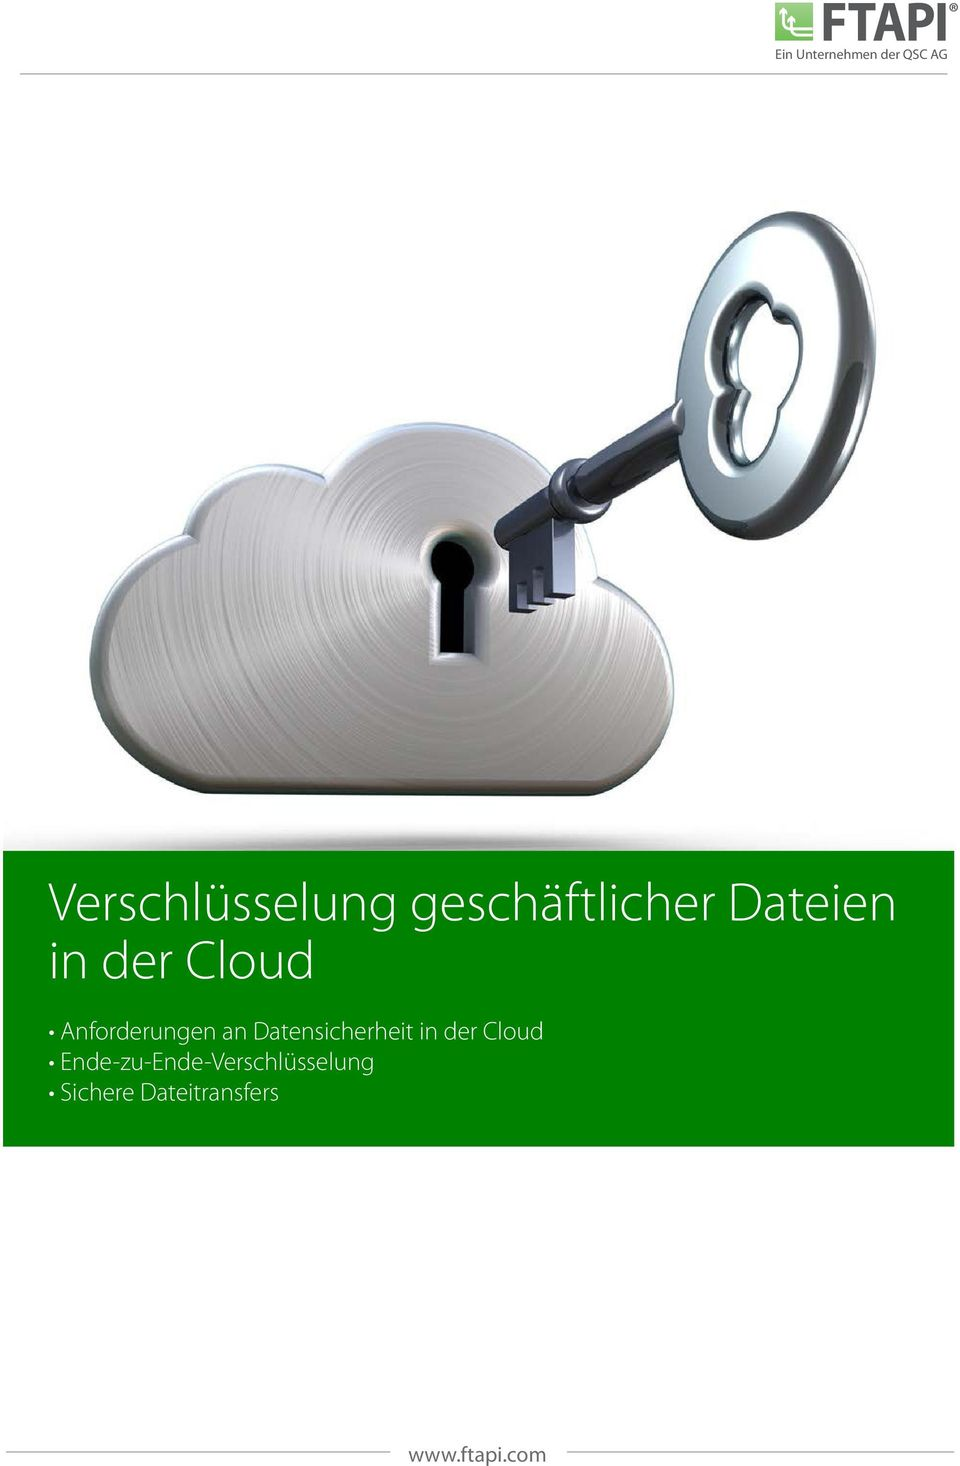 Datensicherheit in der Cloud